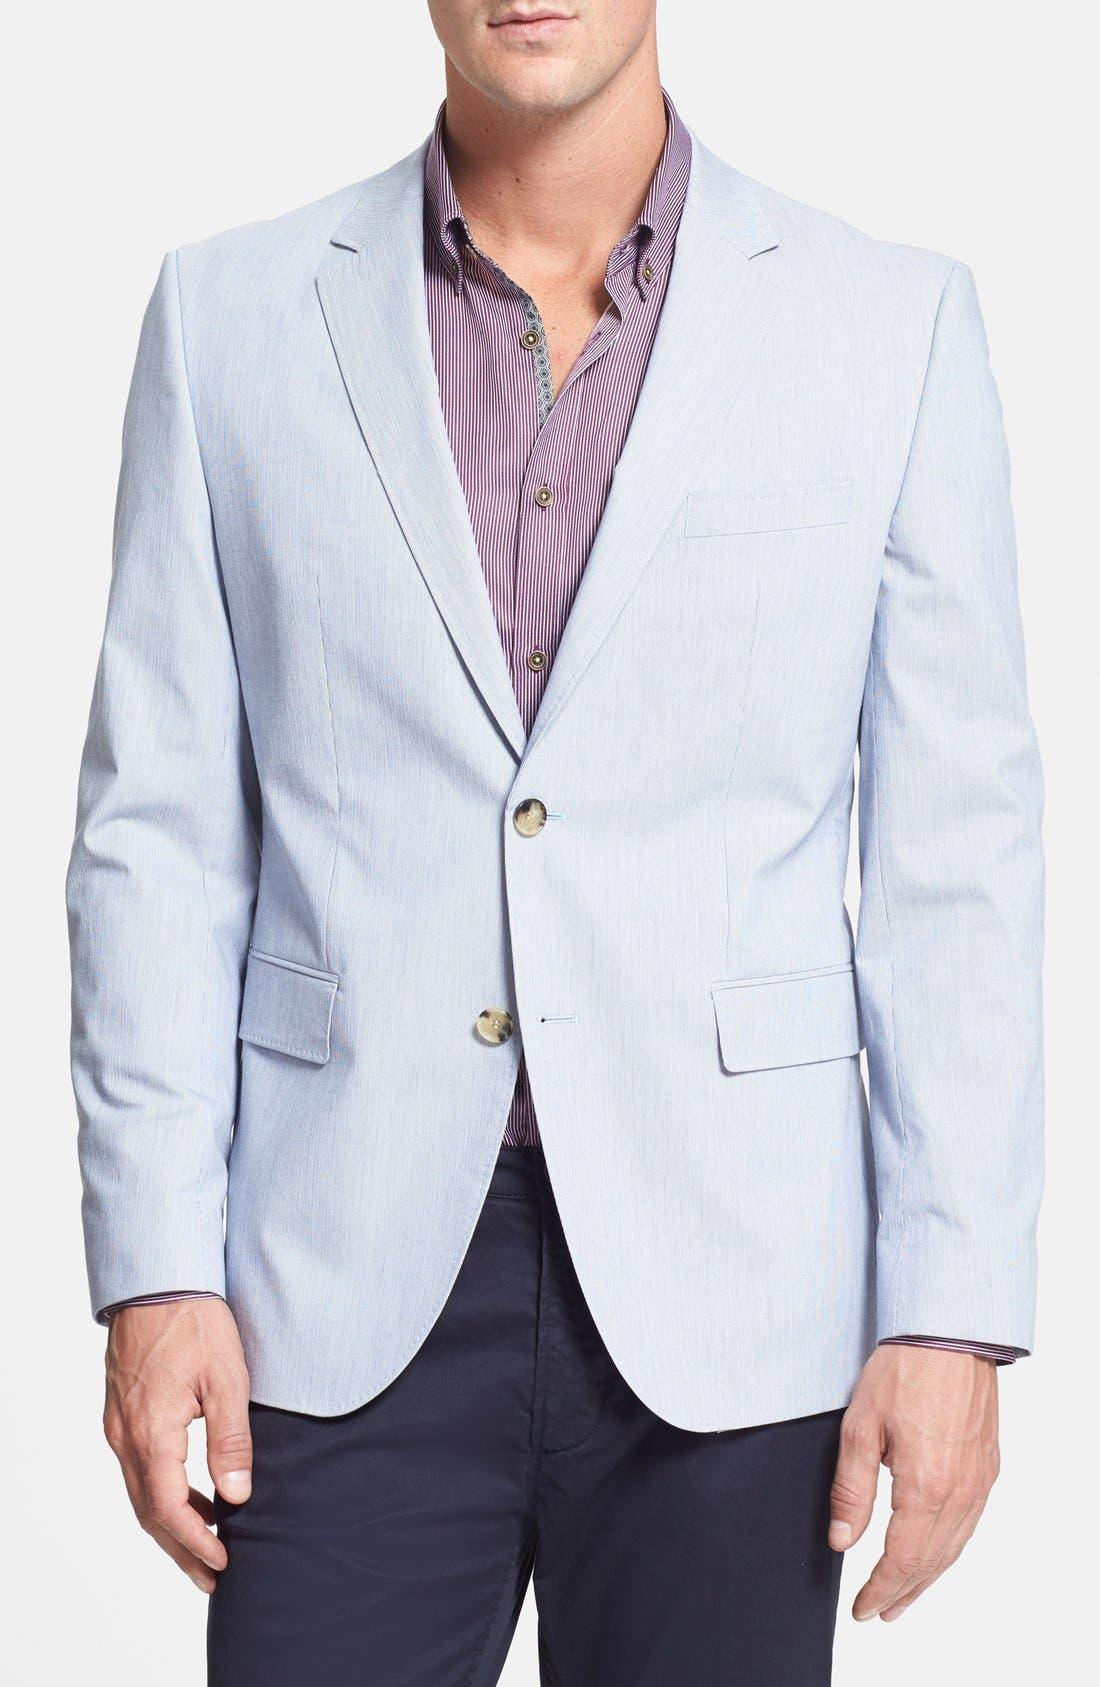 Alternate Image 1 Selected - BOSS HUGO BOSS 'The Coast' Trim Fit Stretch Cotton Stripe Sportcoat